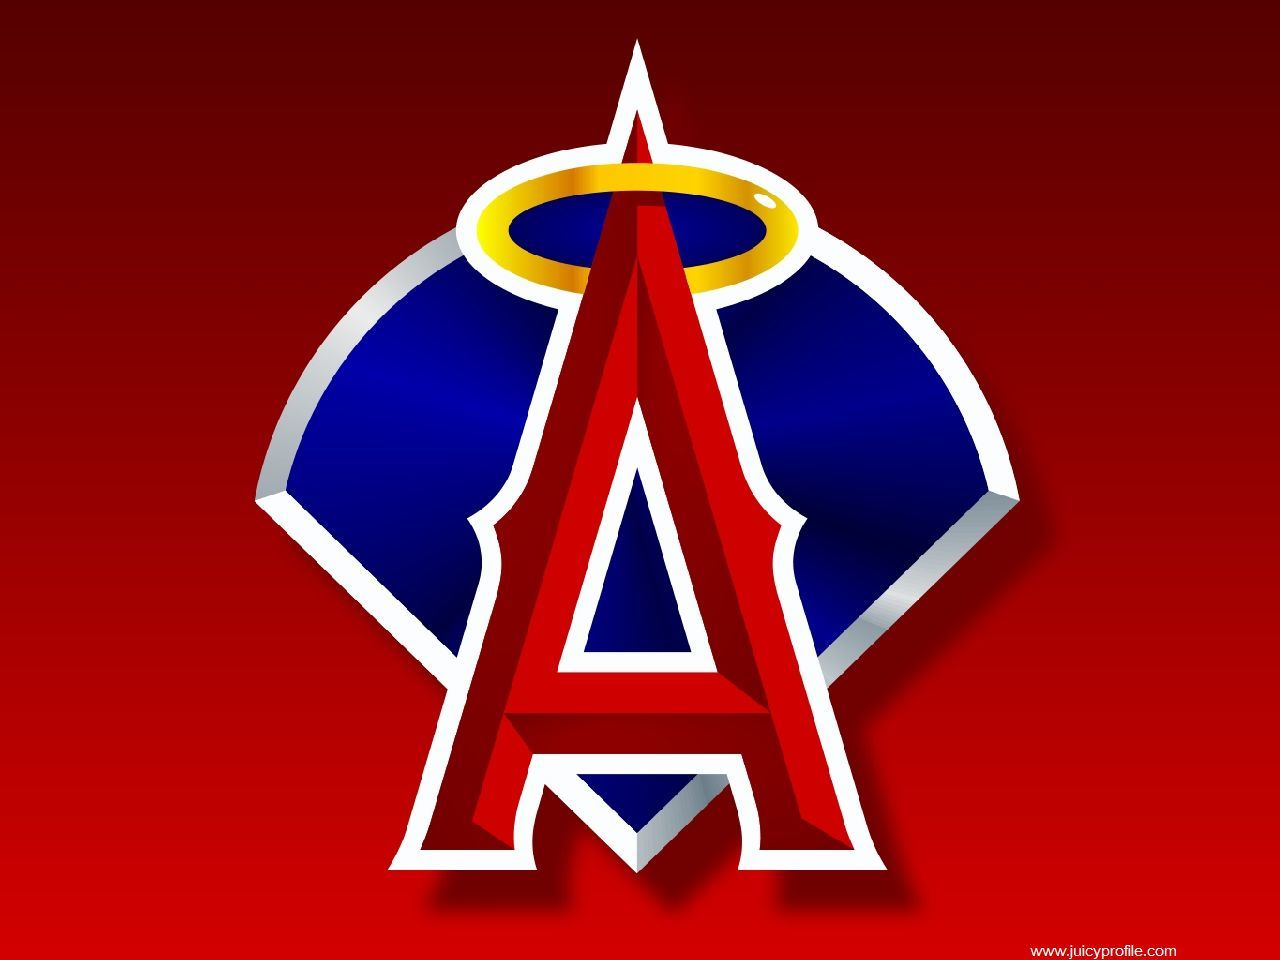 los Angeles Sport mlb HD Wallpaper